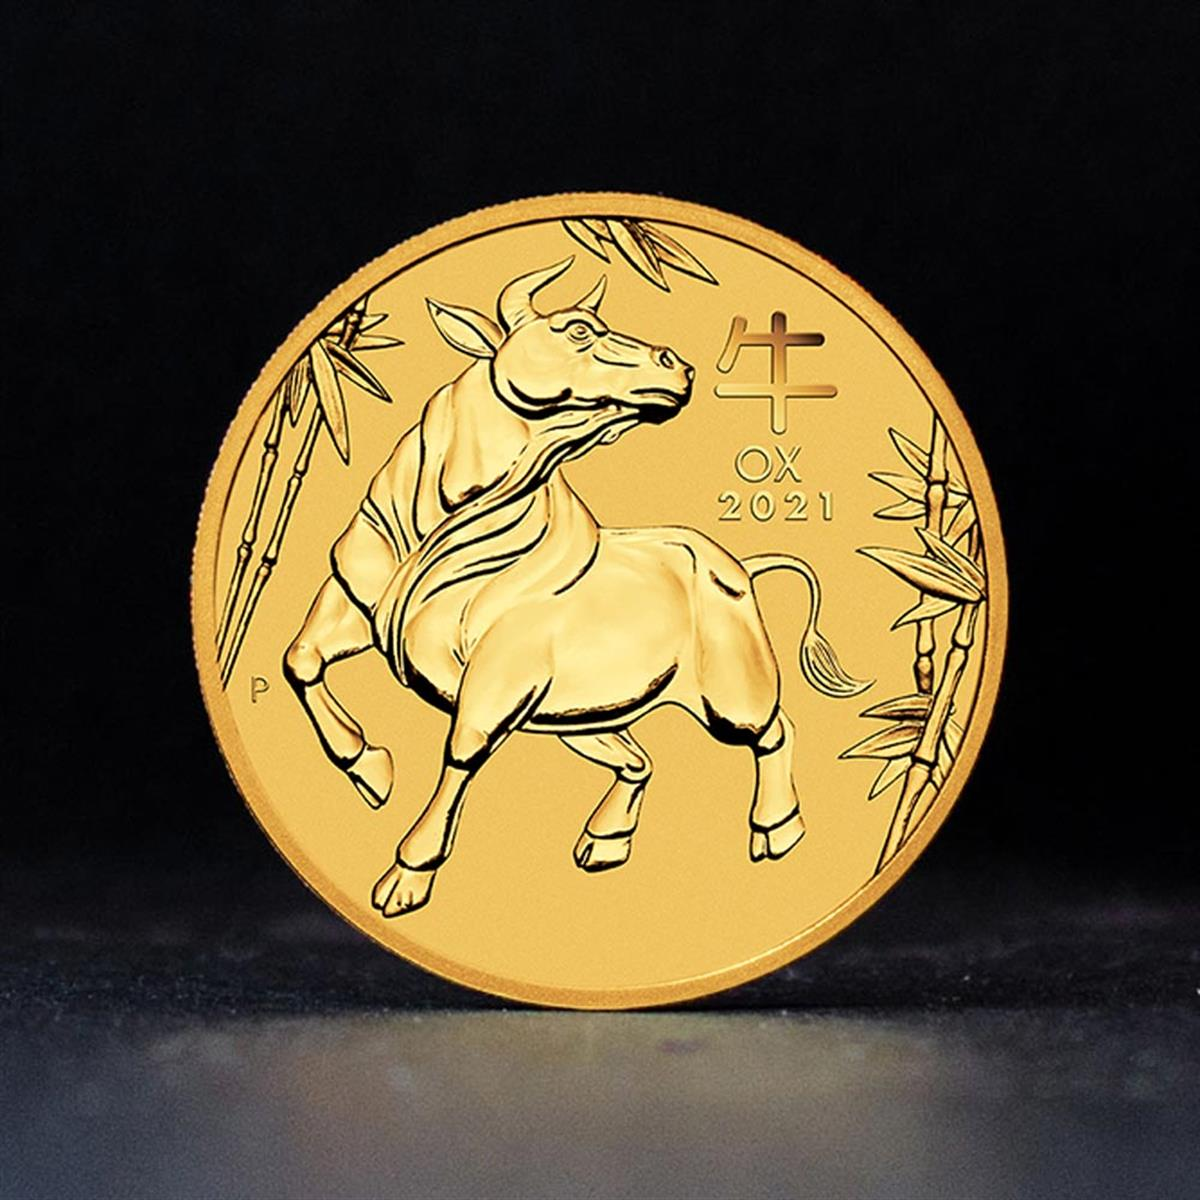 1oz Gold Coin 2021 Year of the Ox - Perth Mint